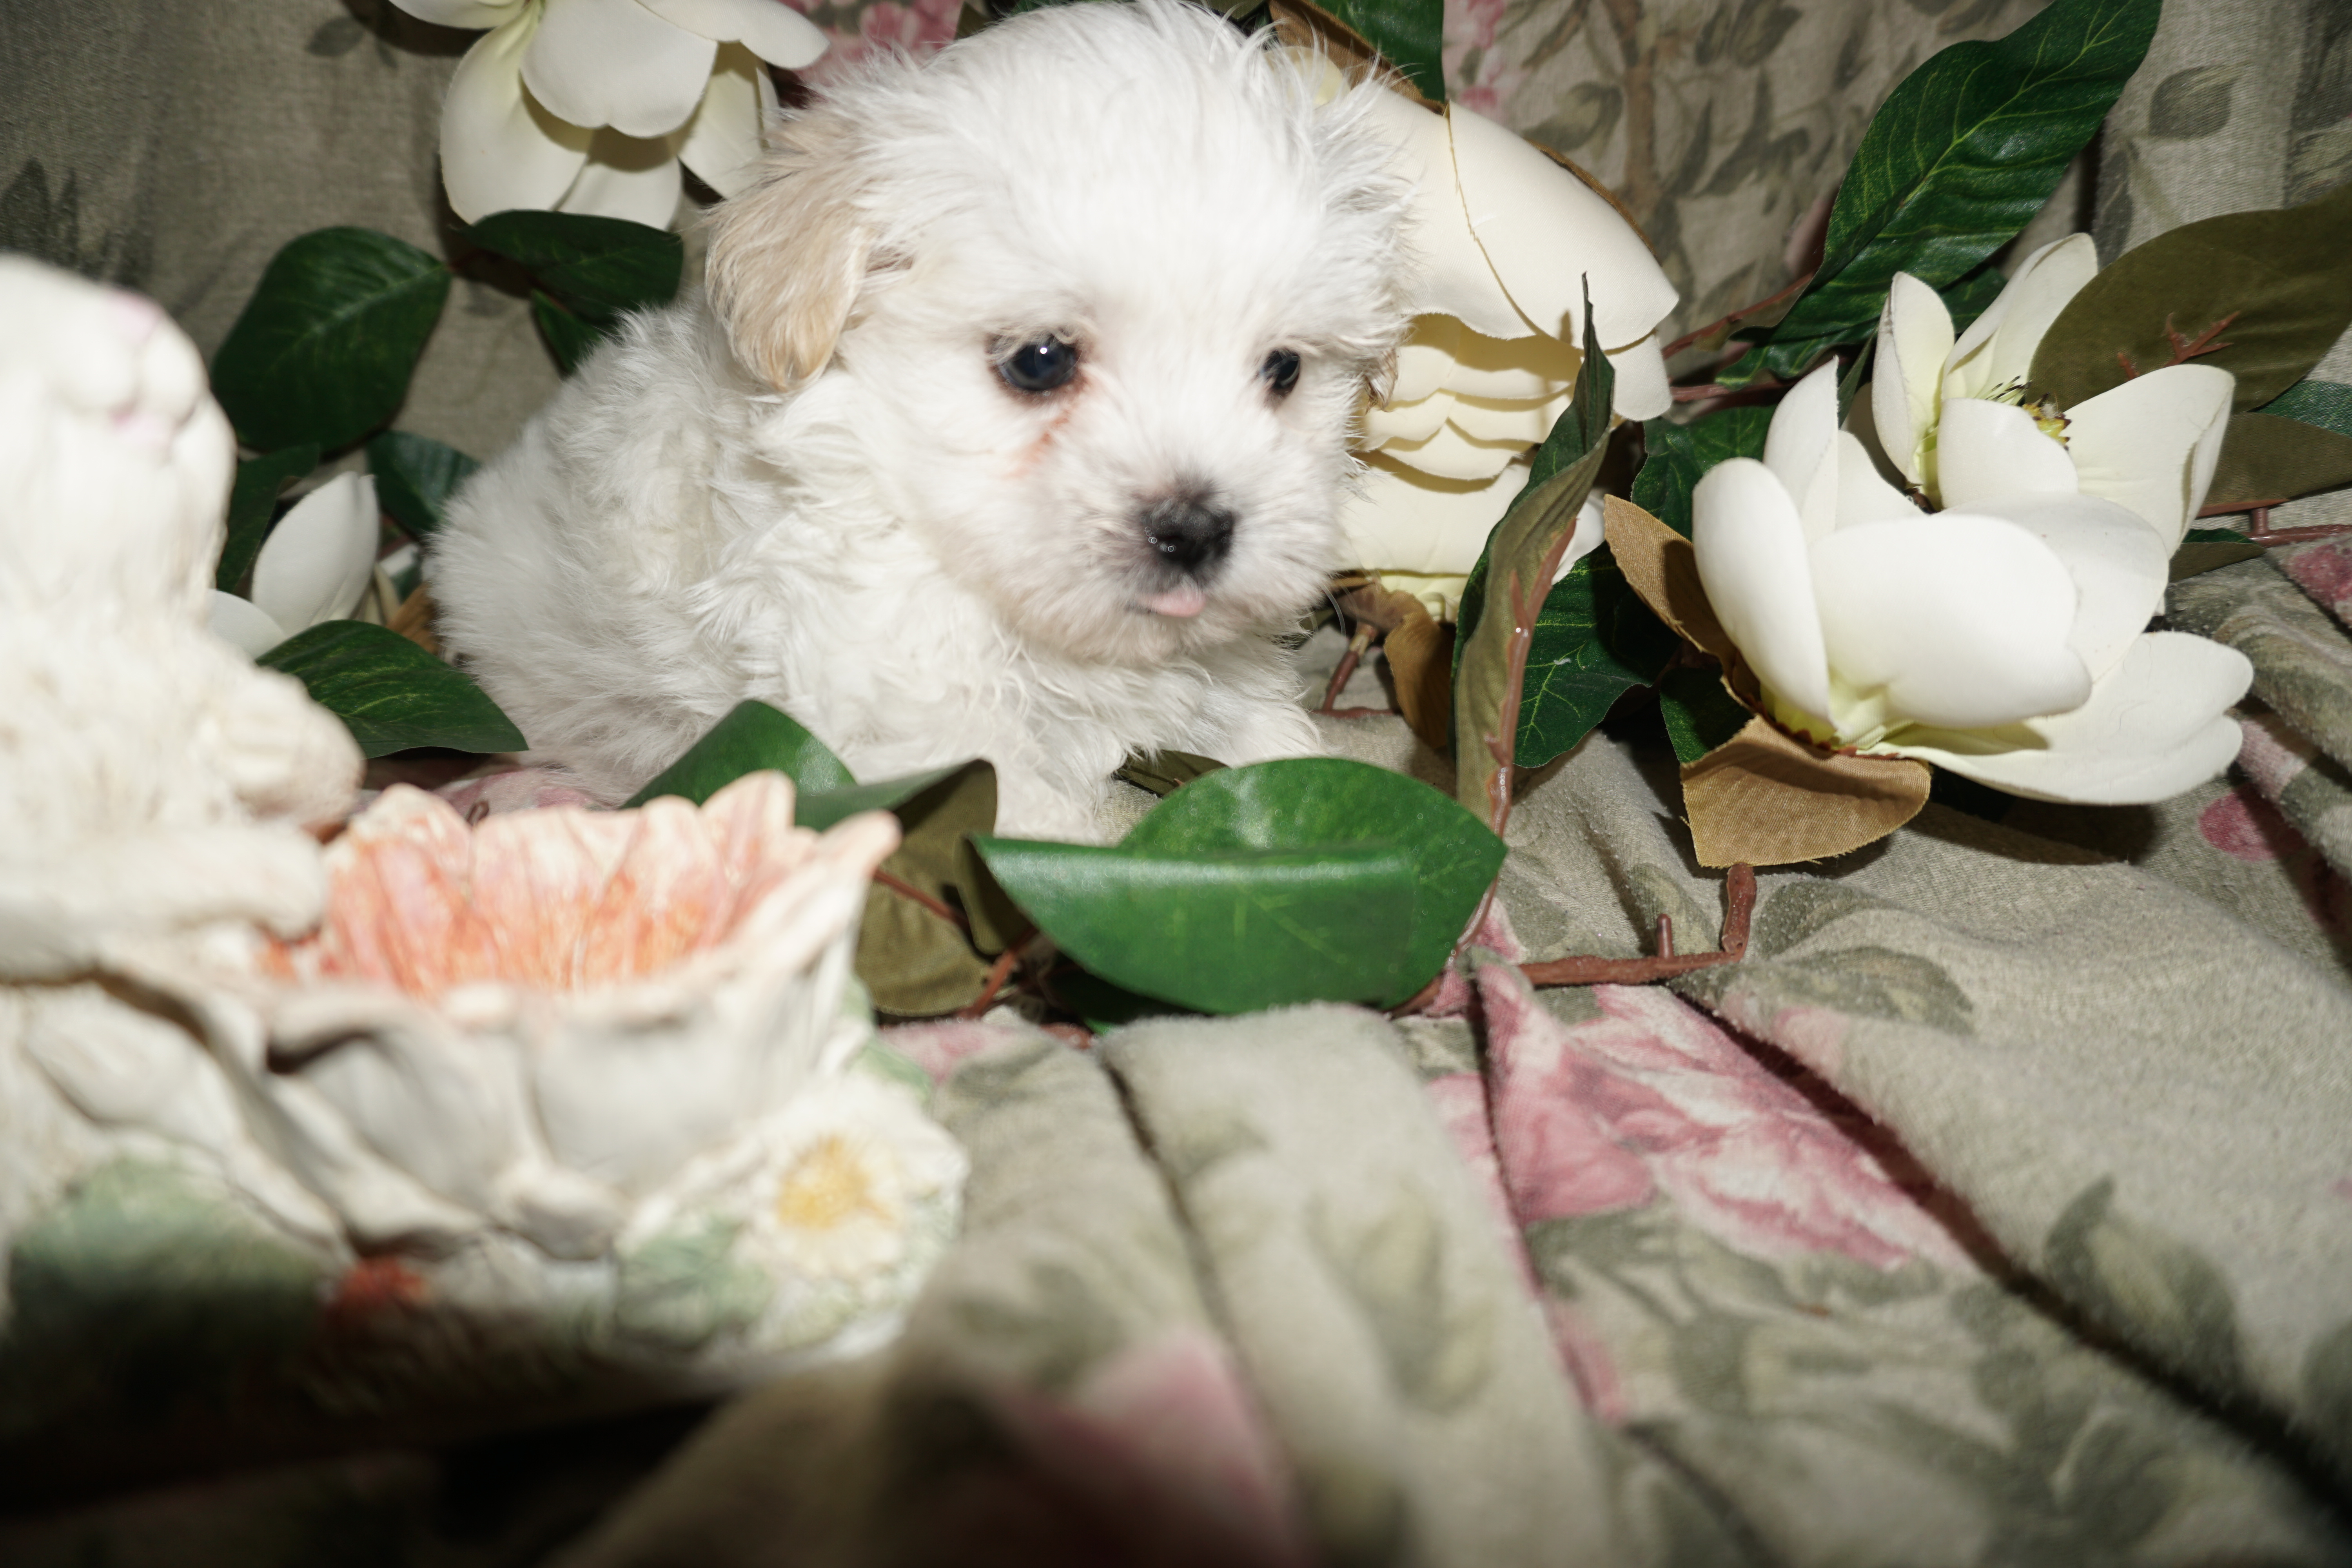 Sold evan cutest male ckc havanese just look at those eyes they sold evan cutest male ckc havanese just look at those eyes they say love tlc puppy love nvjuhfo Images